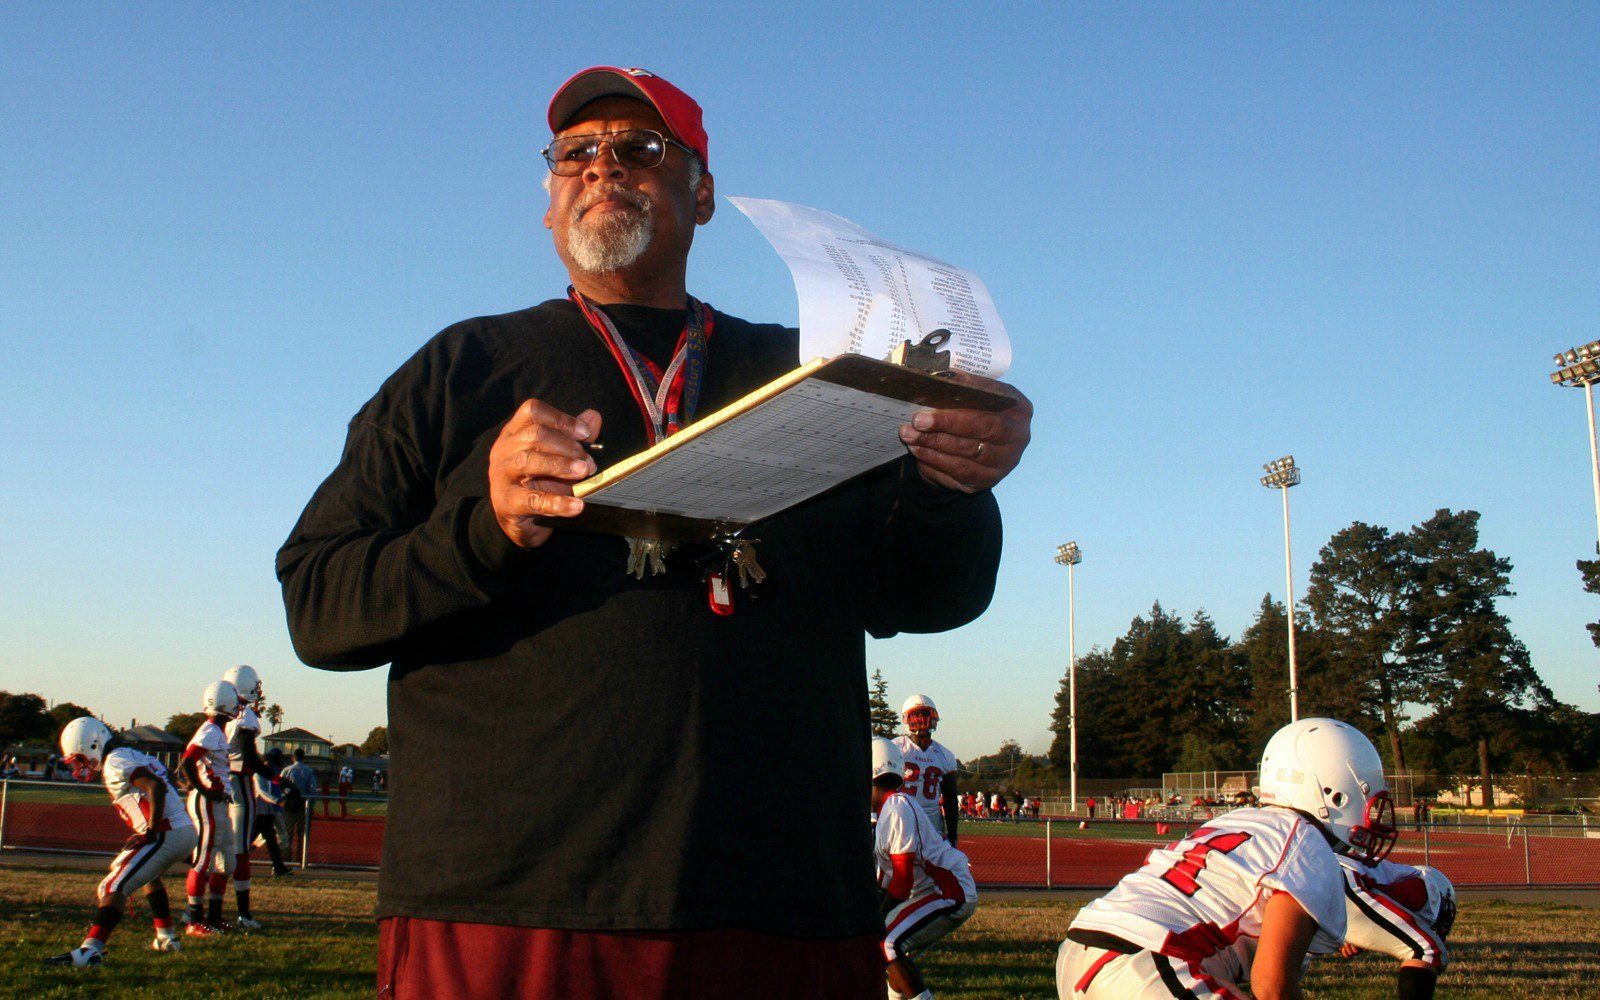 Football coach with his clipboard